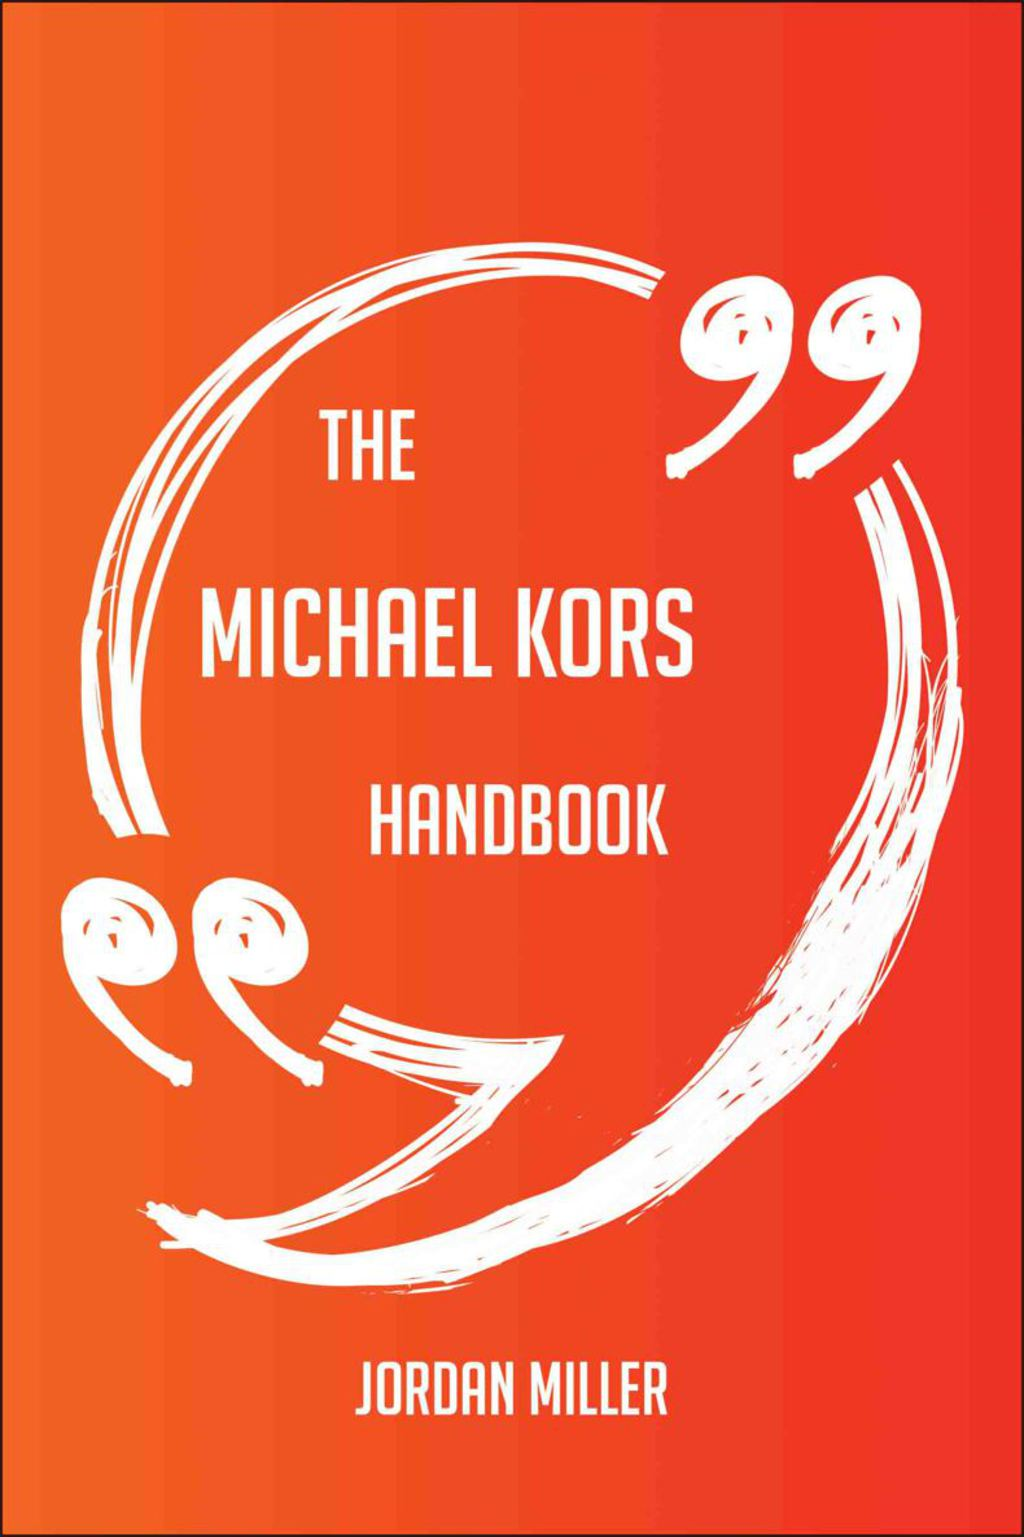 The Michael Kors Handbook - Everything You Need To Know About Michael Kors (ebook) eBooks